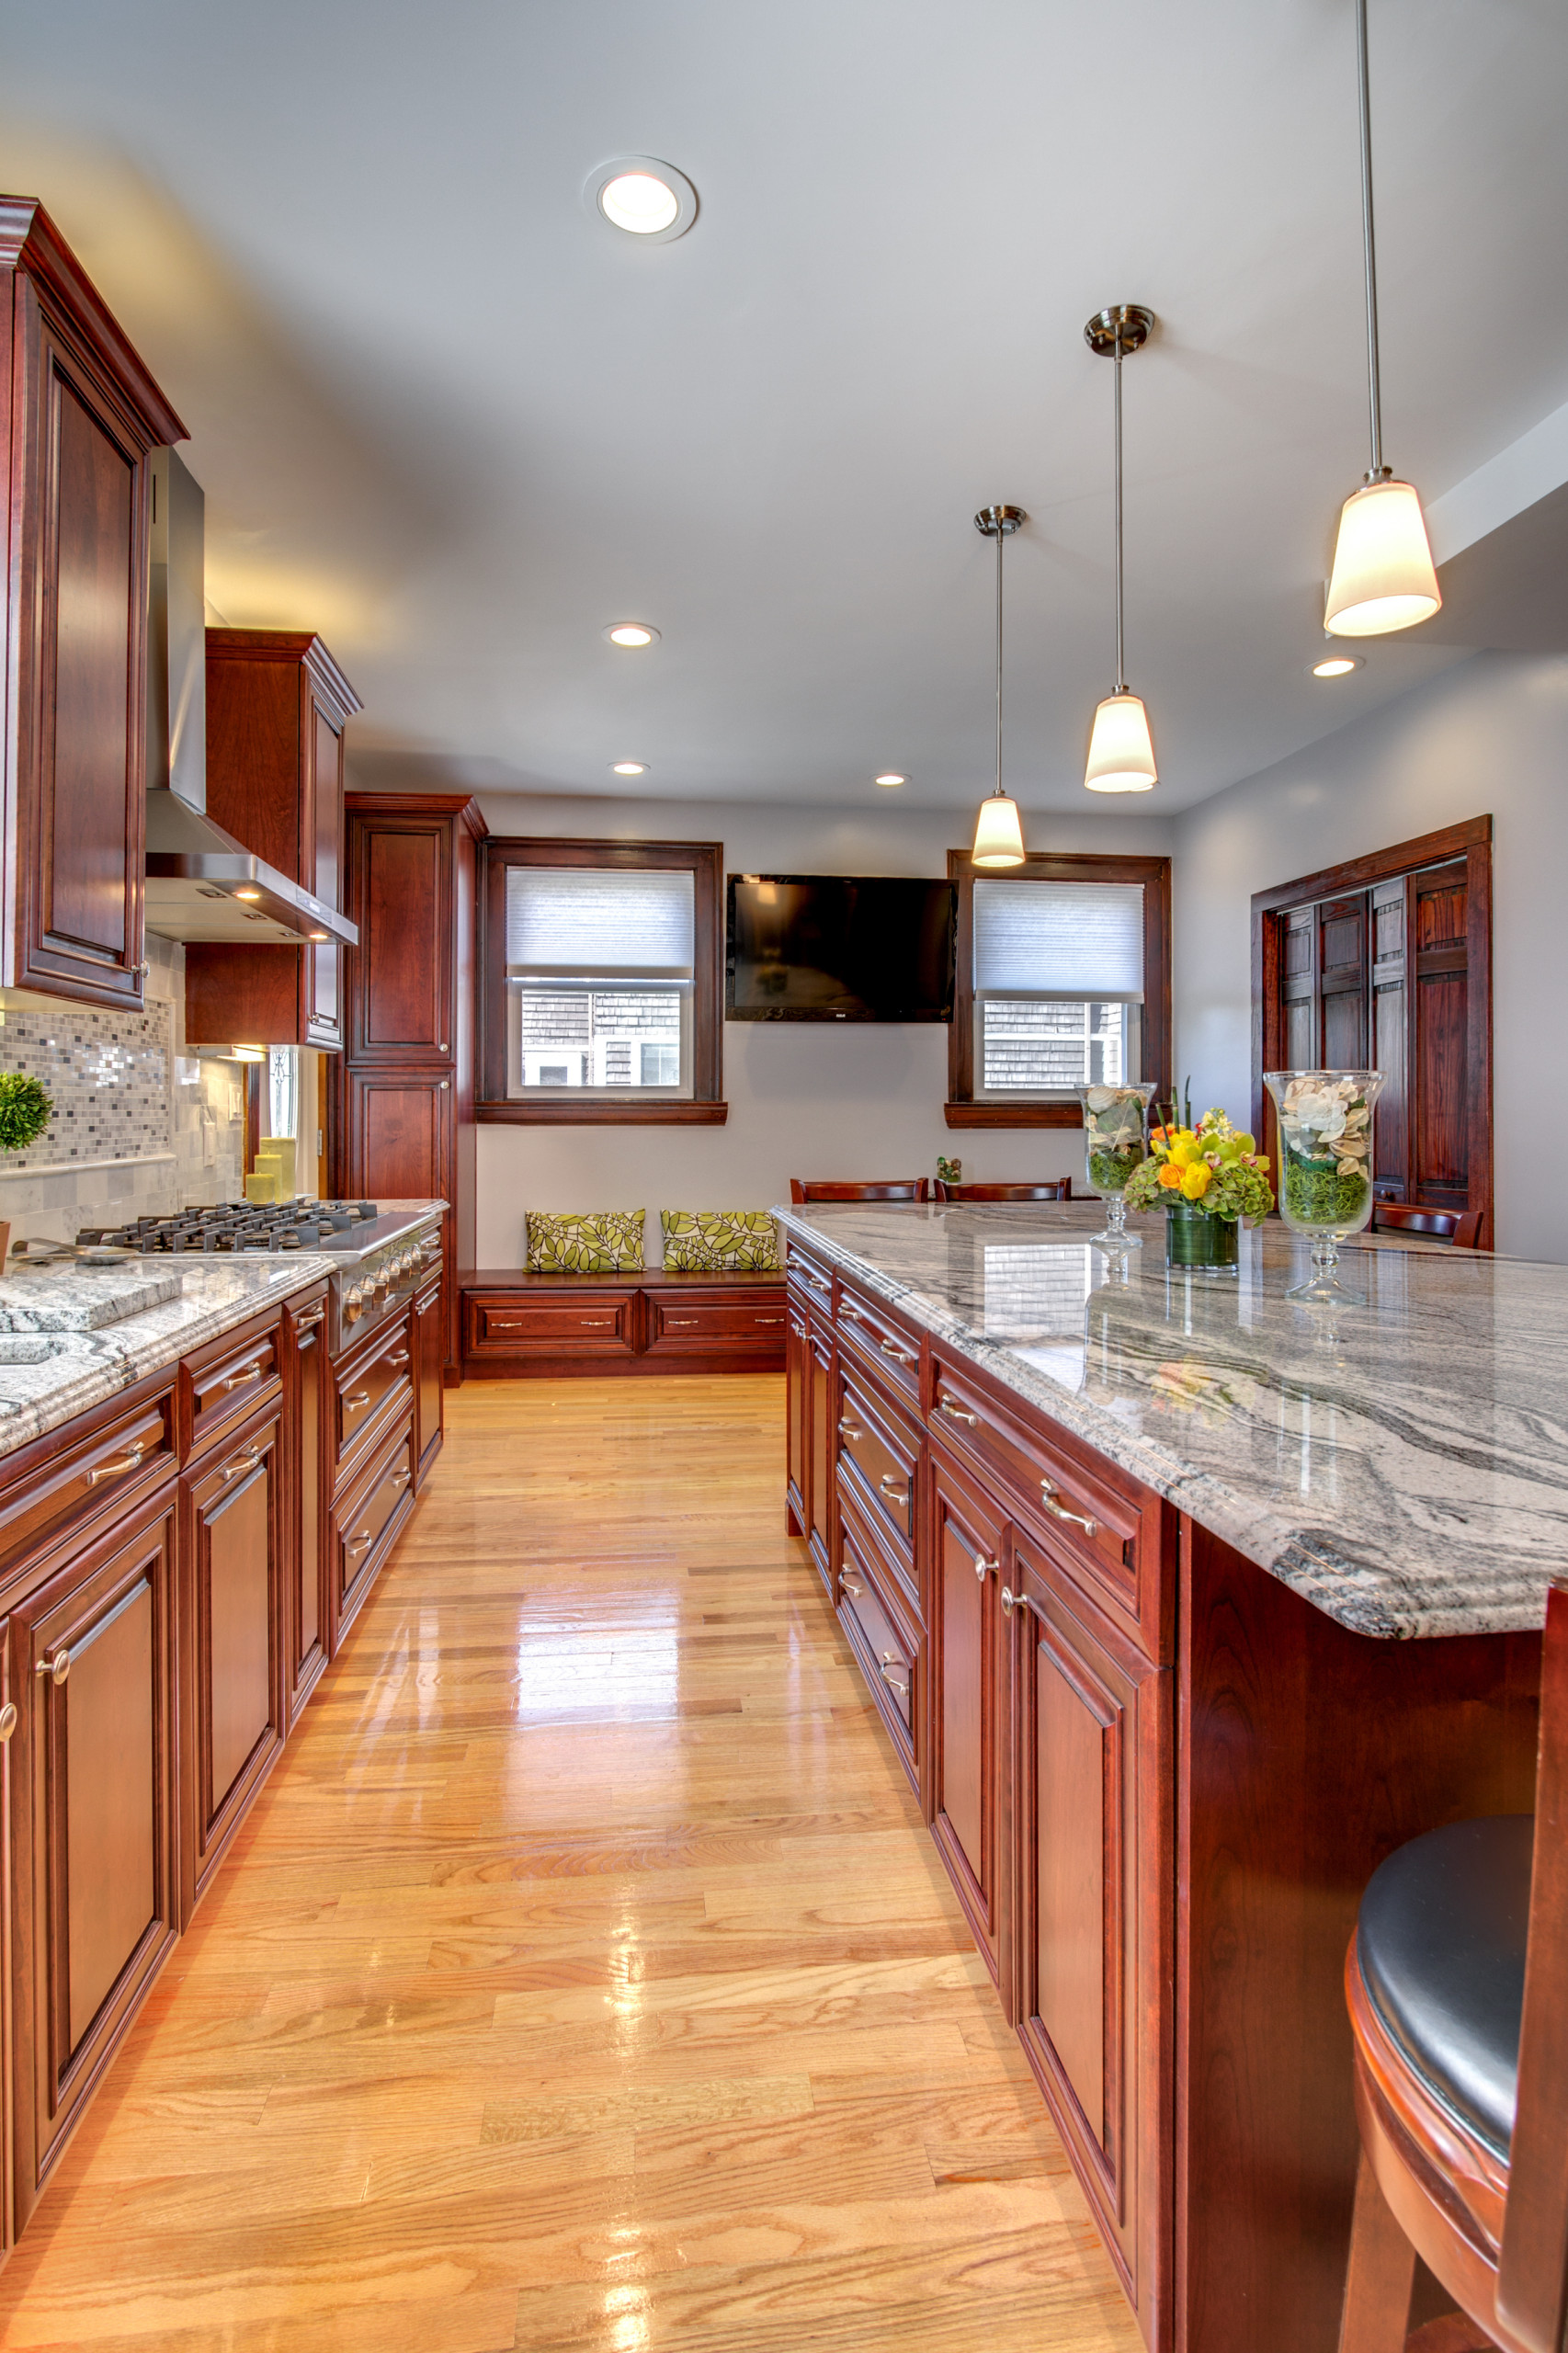 Viscont White Granite Countertops With Cherry Cabinets Contemporary Kitchen Boston By Stone Projects Houzz